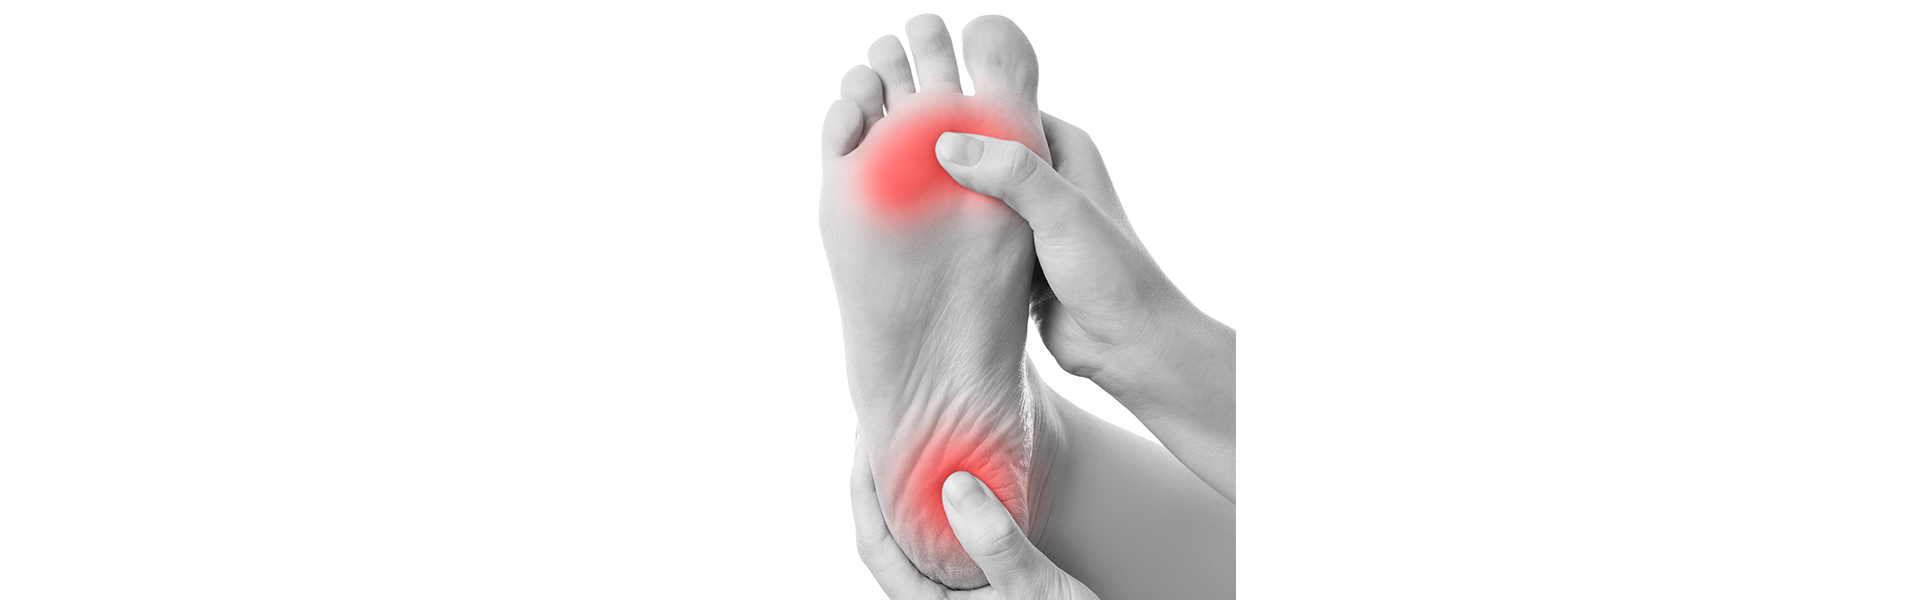 Seek Relief from Metatarsalgia & Morton's Neuroma in St. Catharines